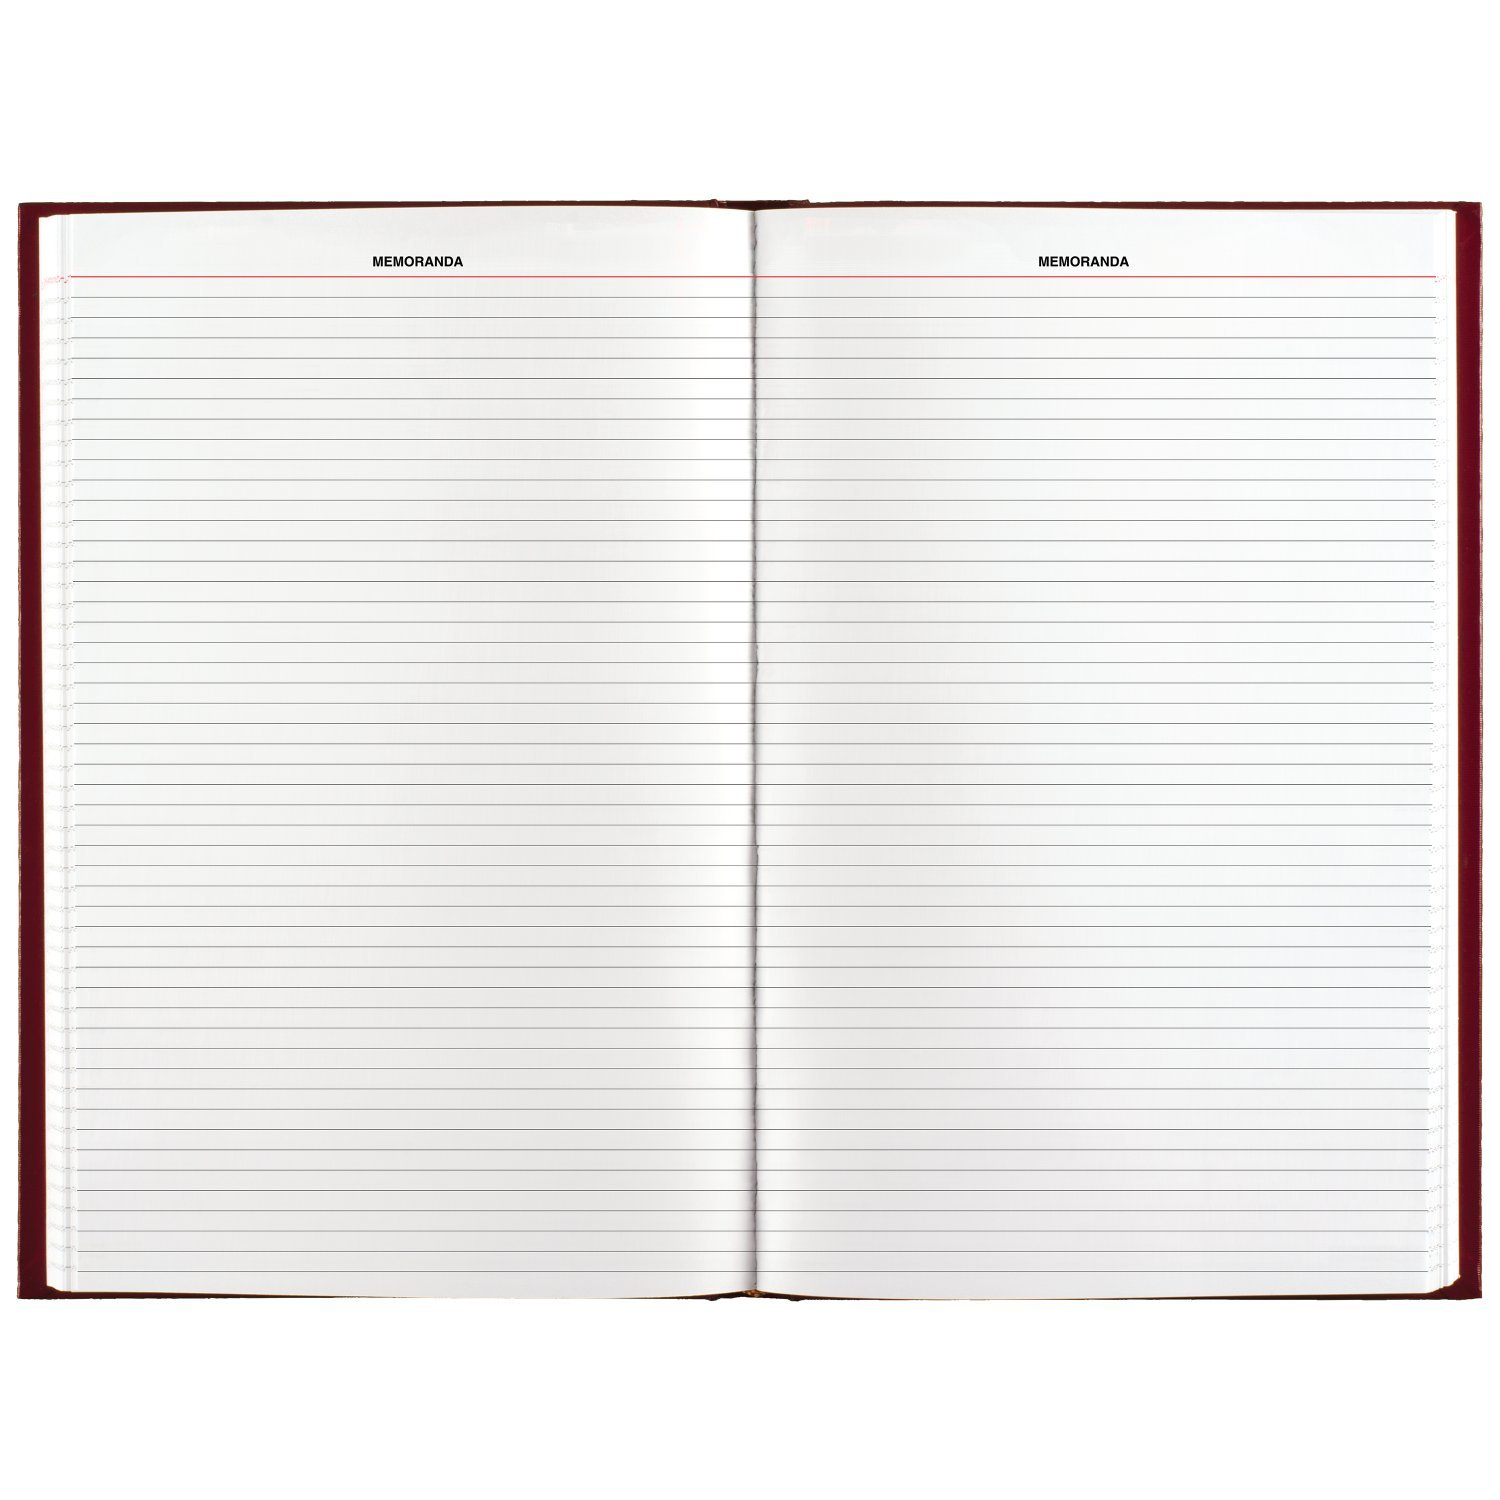 AT-A-GLANCE 2019 Daily Diary, January - December, 8-3/16'' x 13-7/16'', Standard, Red (SD38179) by AT-A-GLANCE (Image #3)